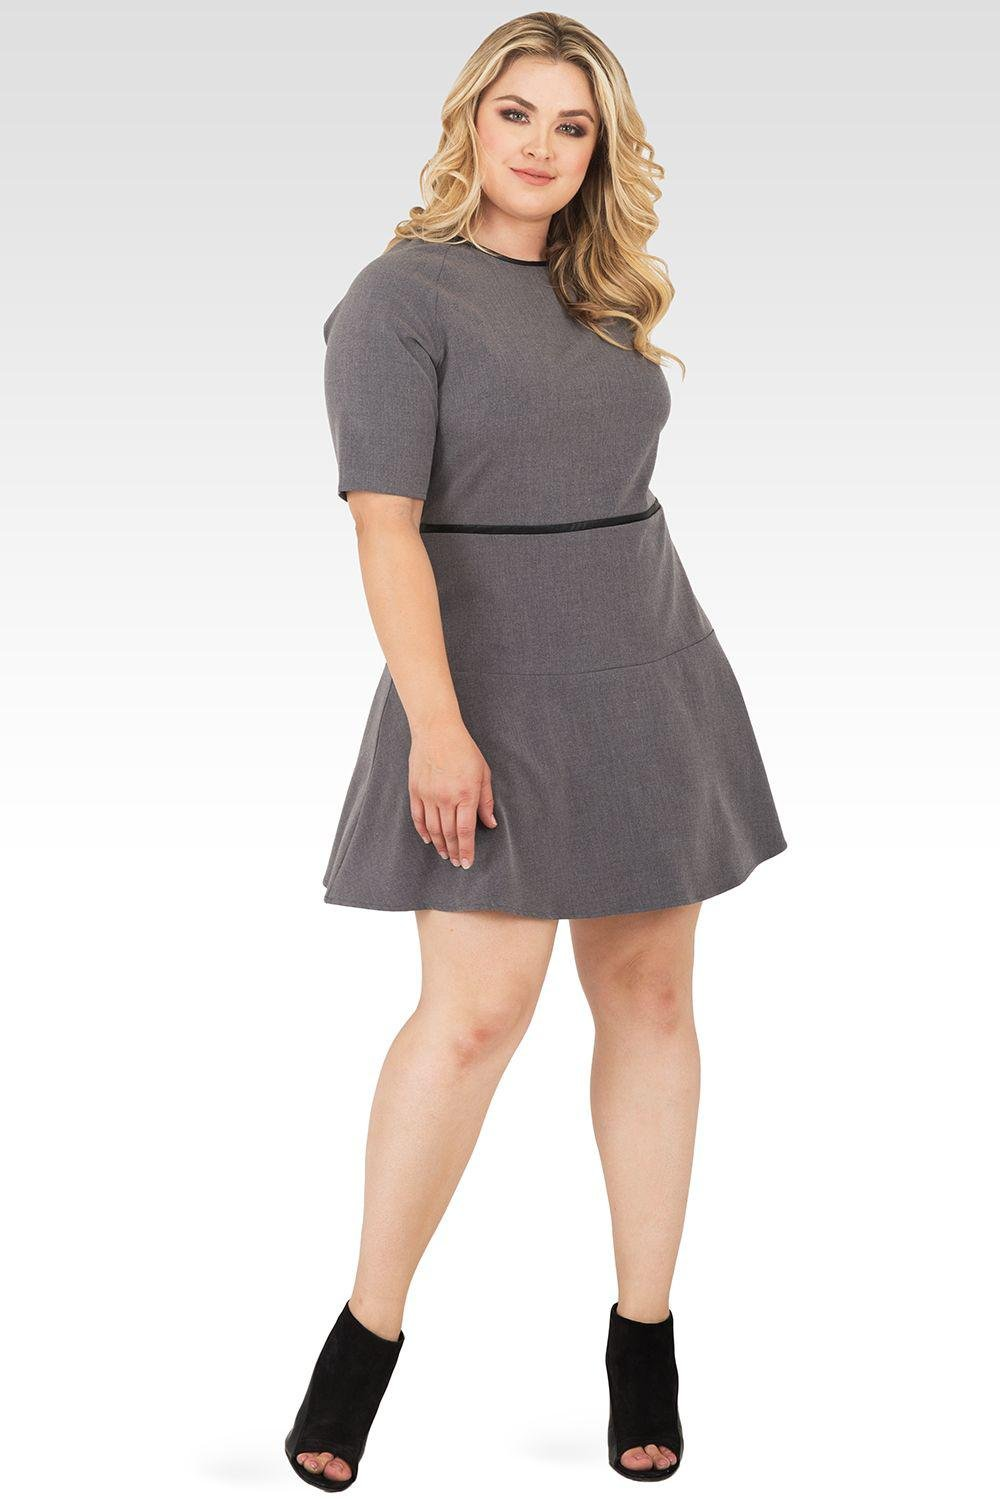 Plus Size Tina Charcoal Gray Exposed Zipper A-Line Suiting Dress